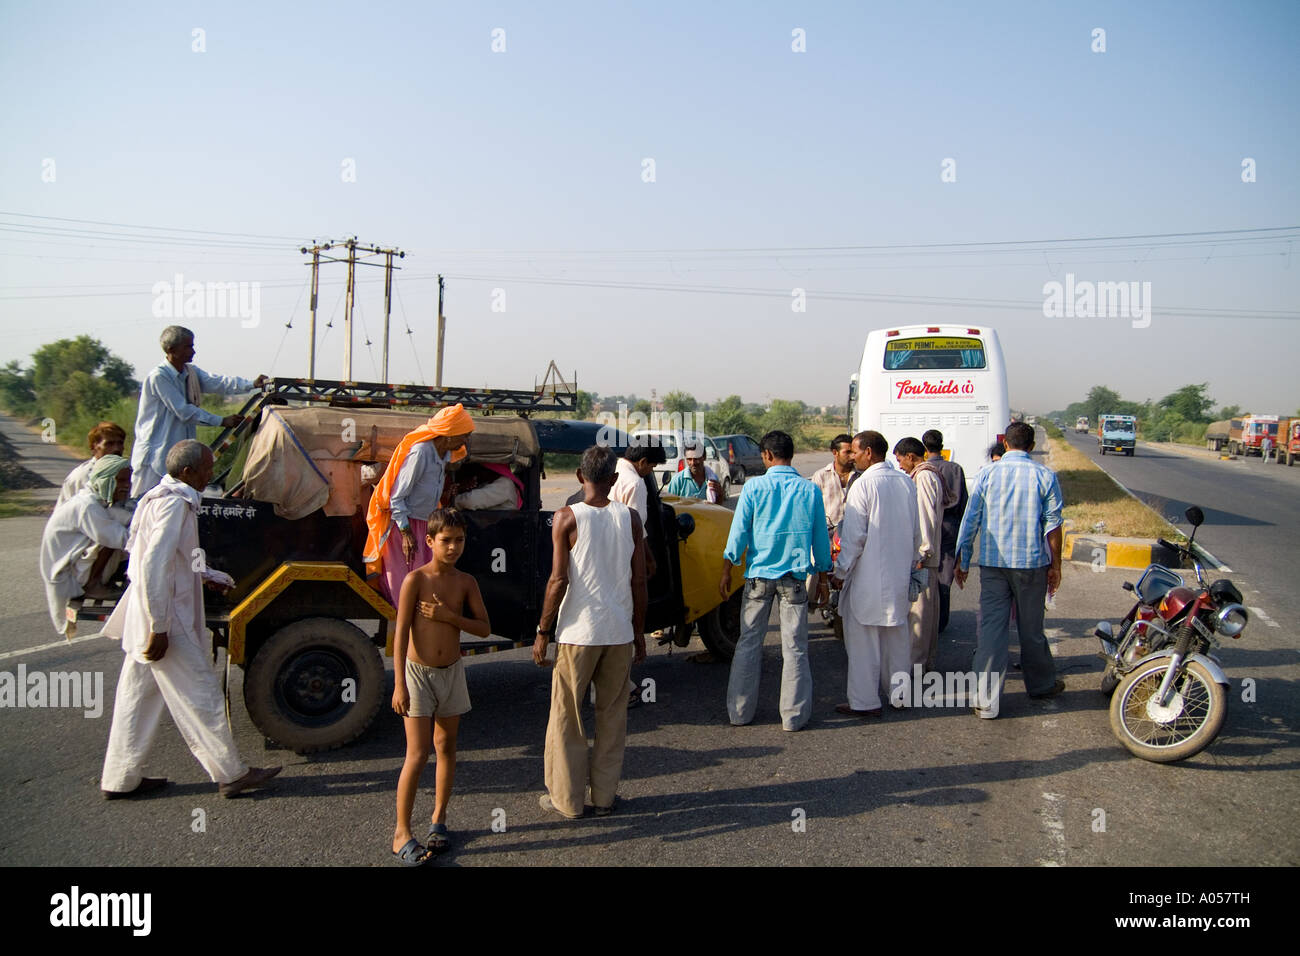 accident with tourist bus and small motor vehicle on dangerous roads